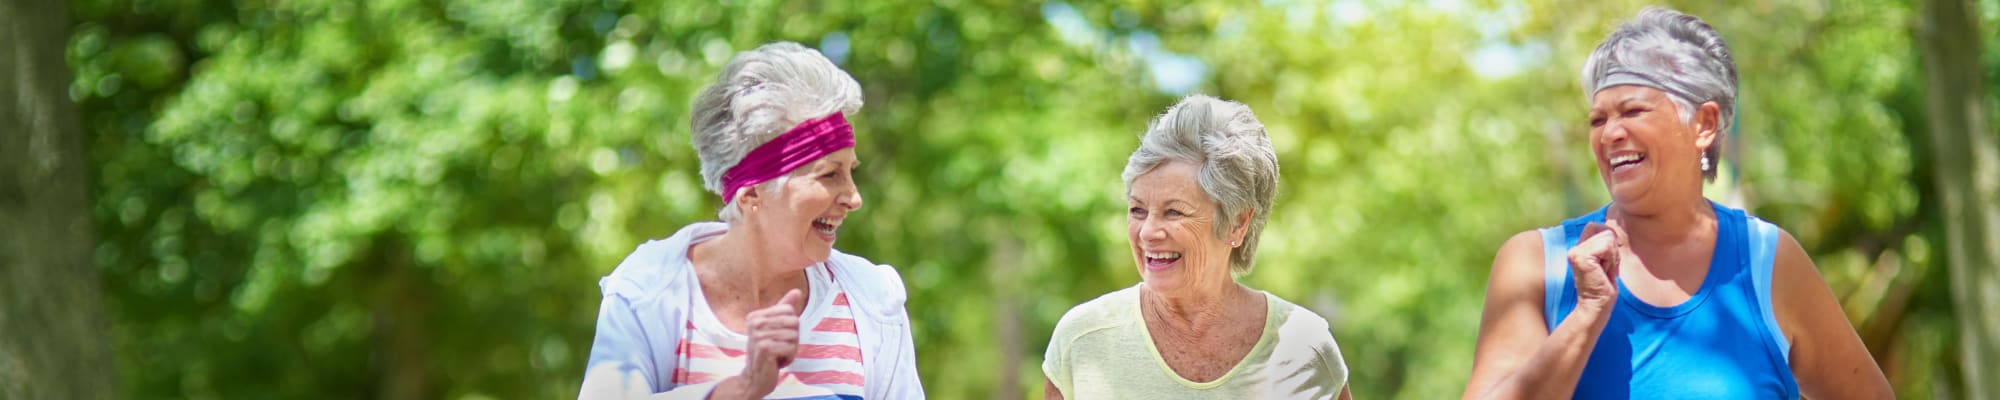 Schedule a Tour at The Harmony Collection at Roanoke - Memory Care in Roanoke, Virginia